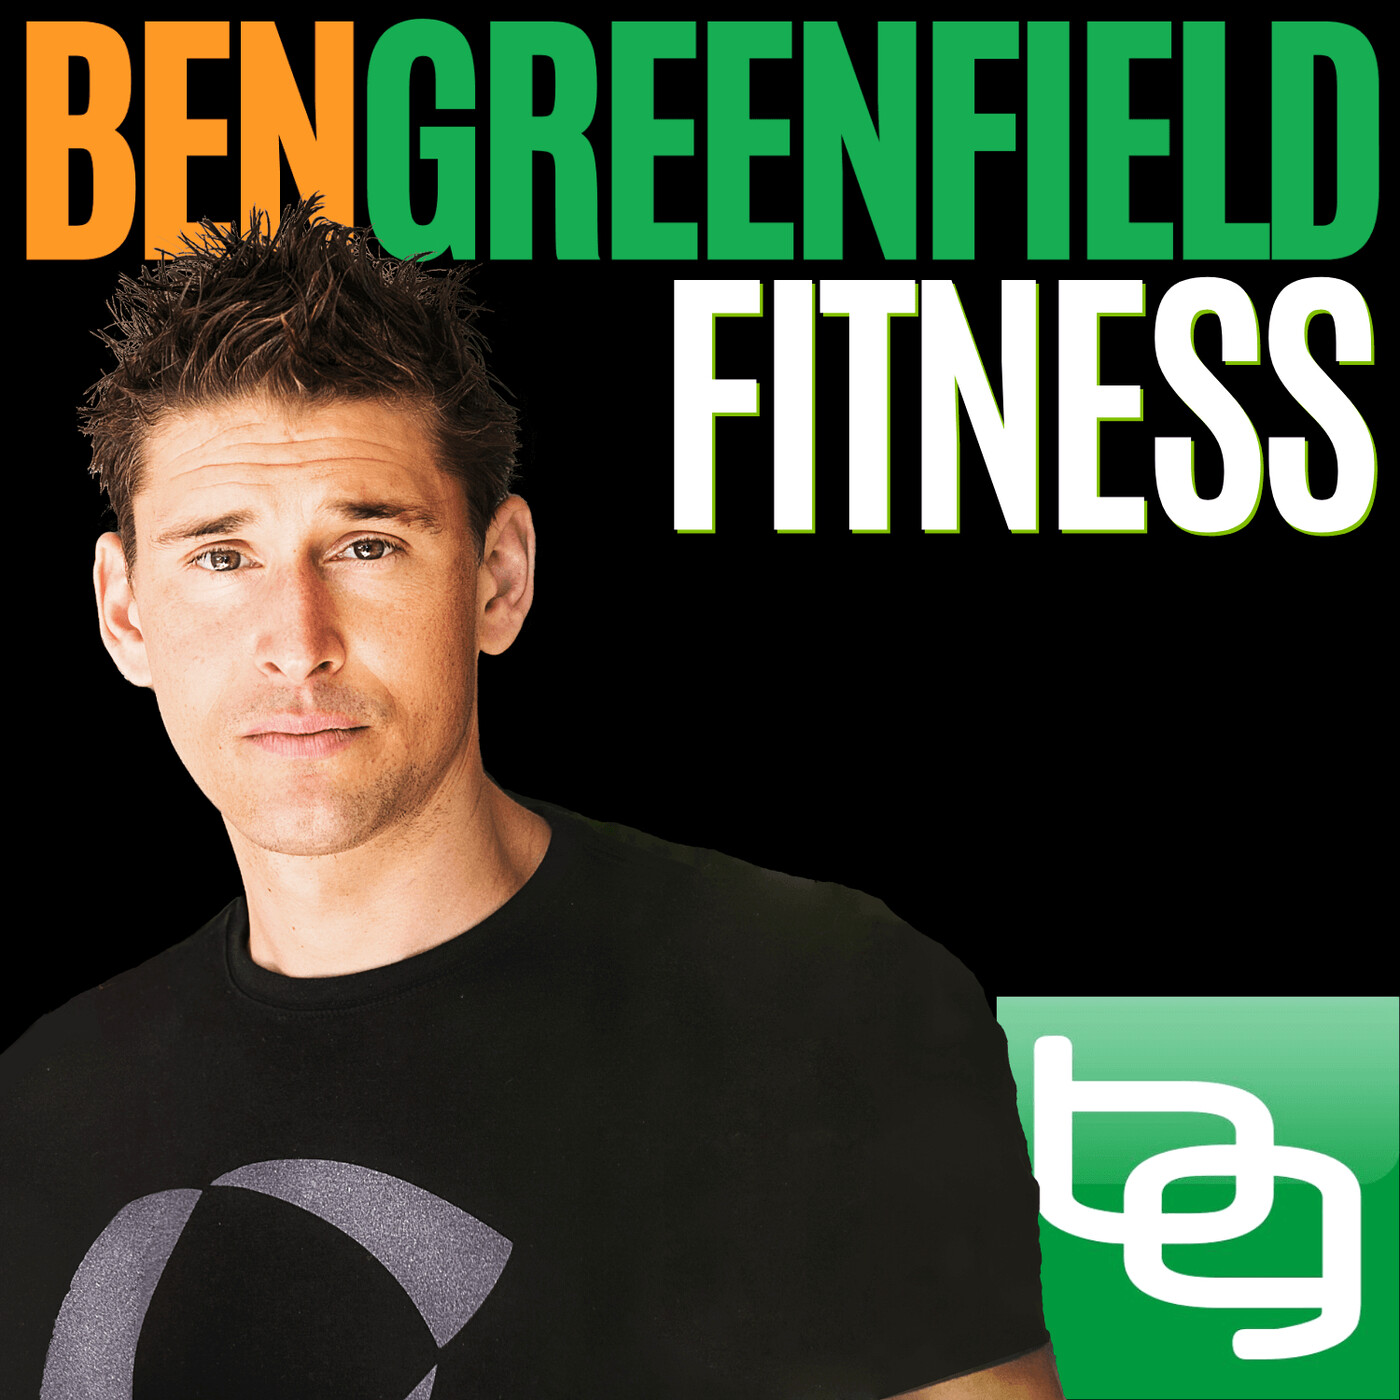 373: Great Reasons To DO HIIT, How To Get Muscular Legs, How To Test For Gut Inflammation, Natural Ways To Increase...